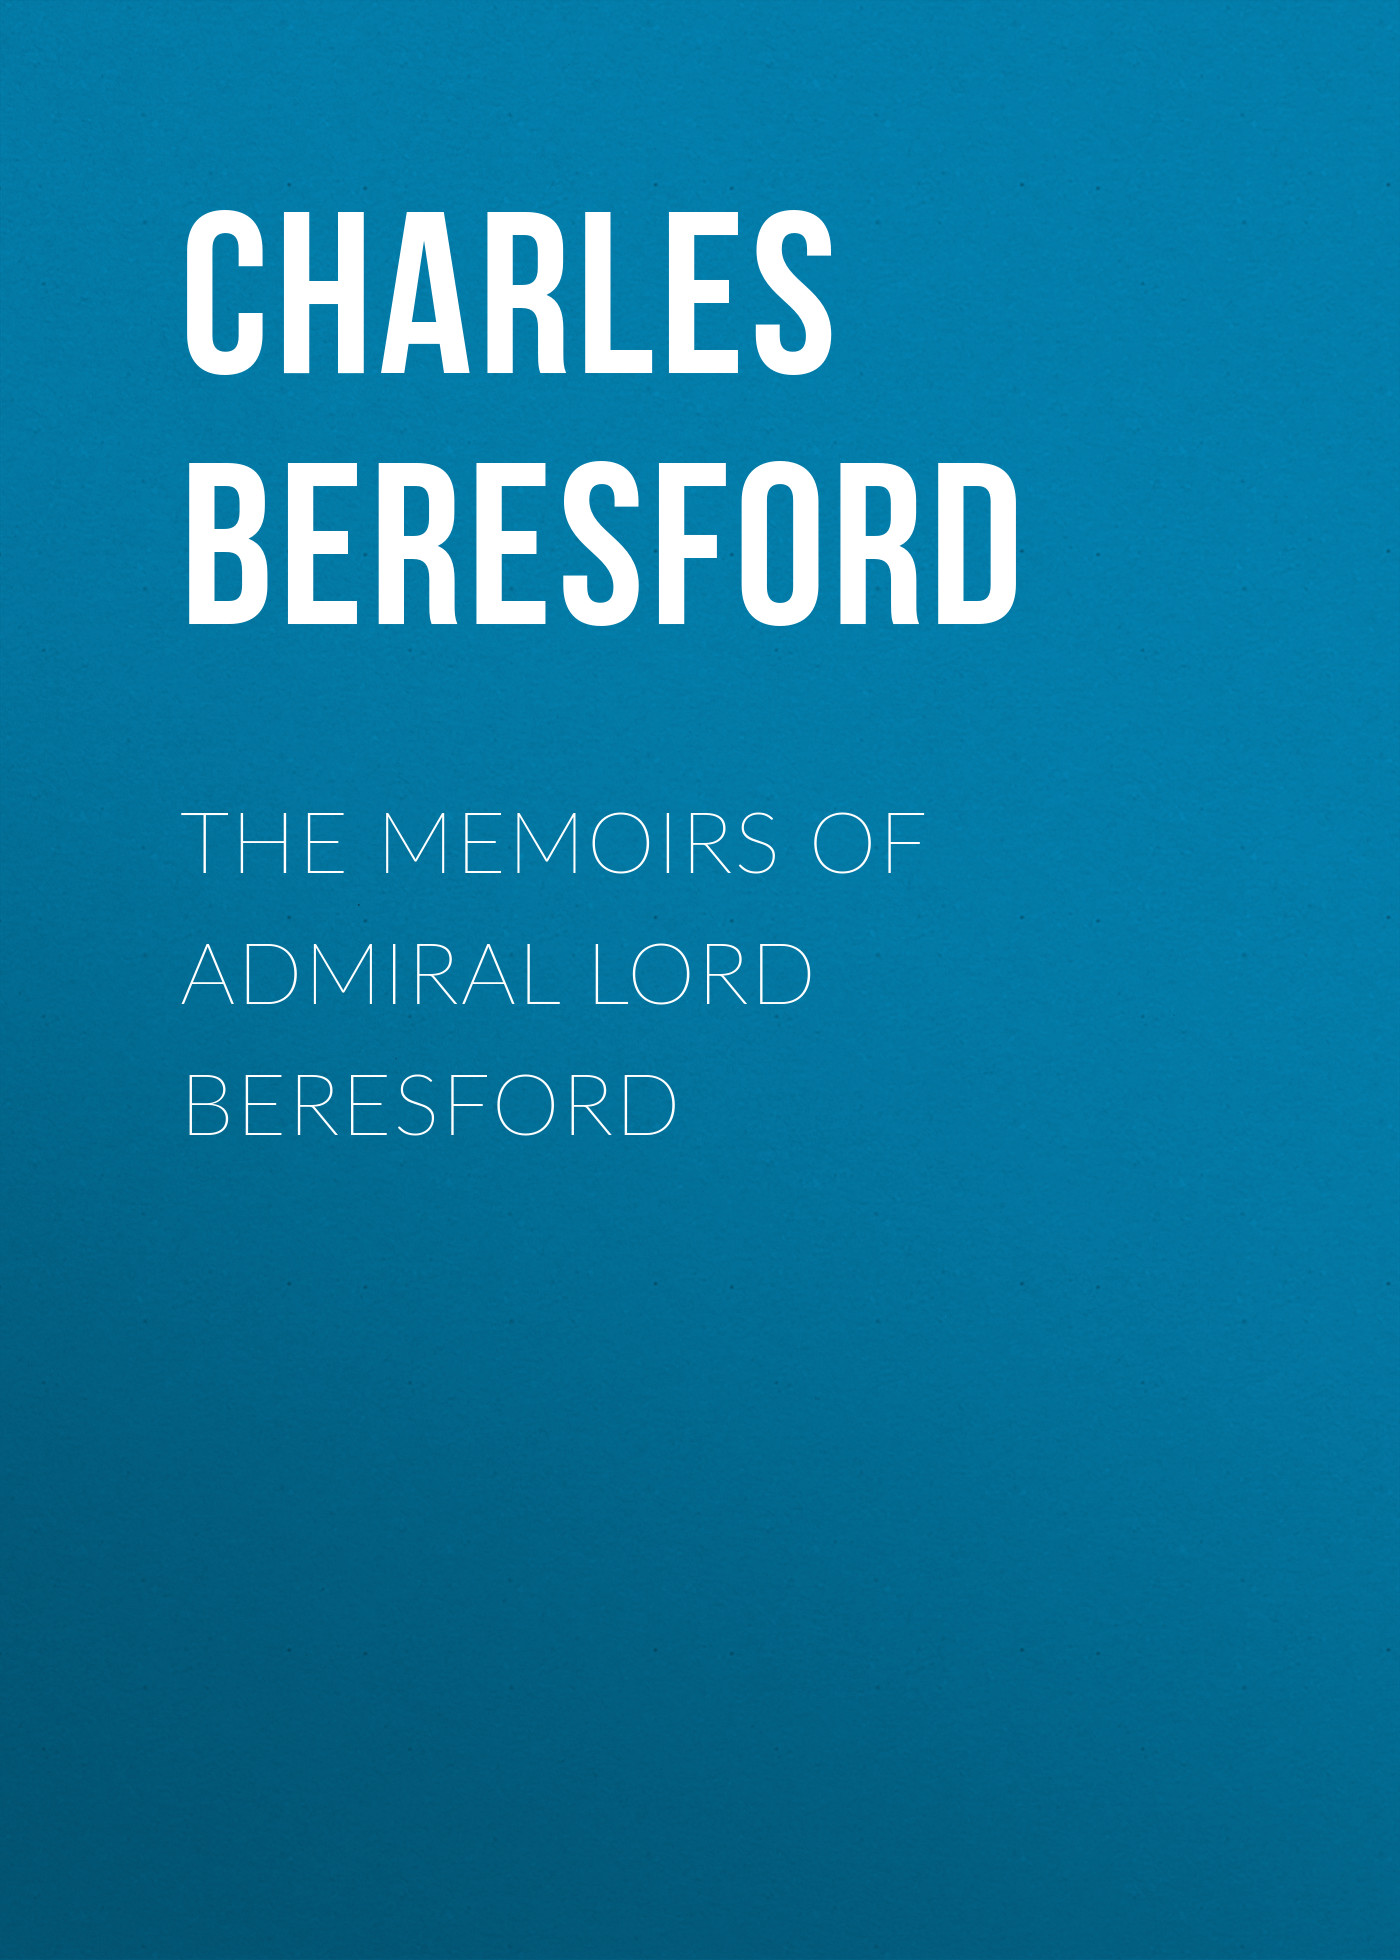 Beresford Charles William De la Poer Beresford The Memoirs of Admiral Lord Beresford walter de la mare memoirs of a midget